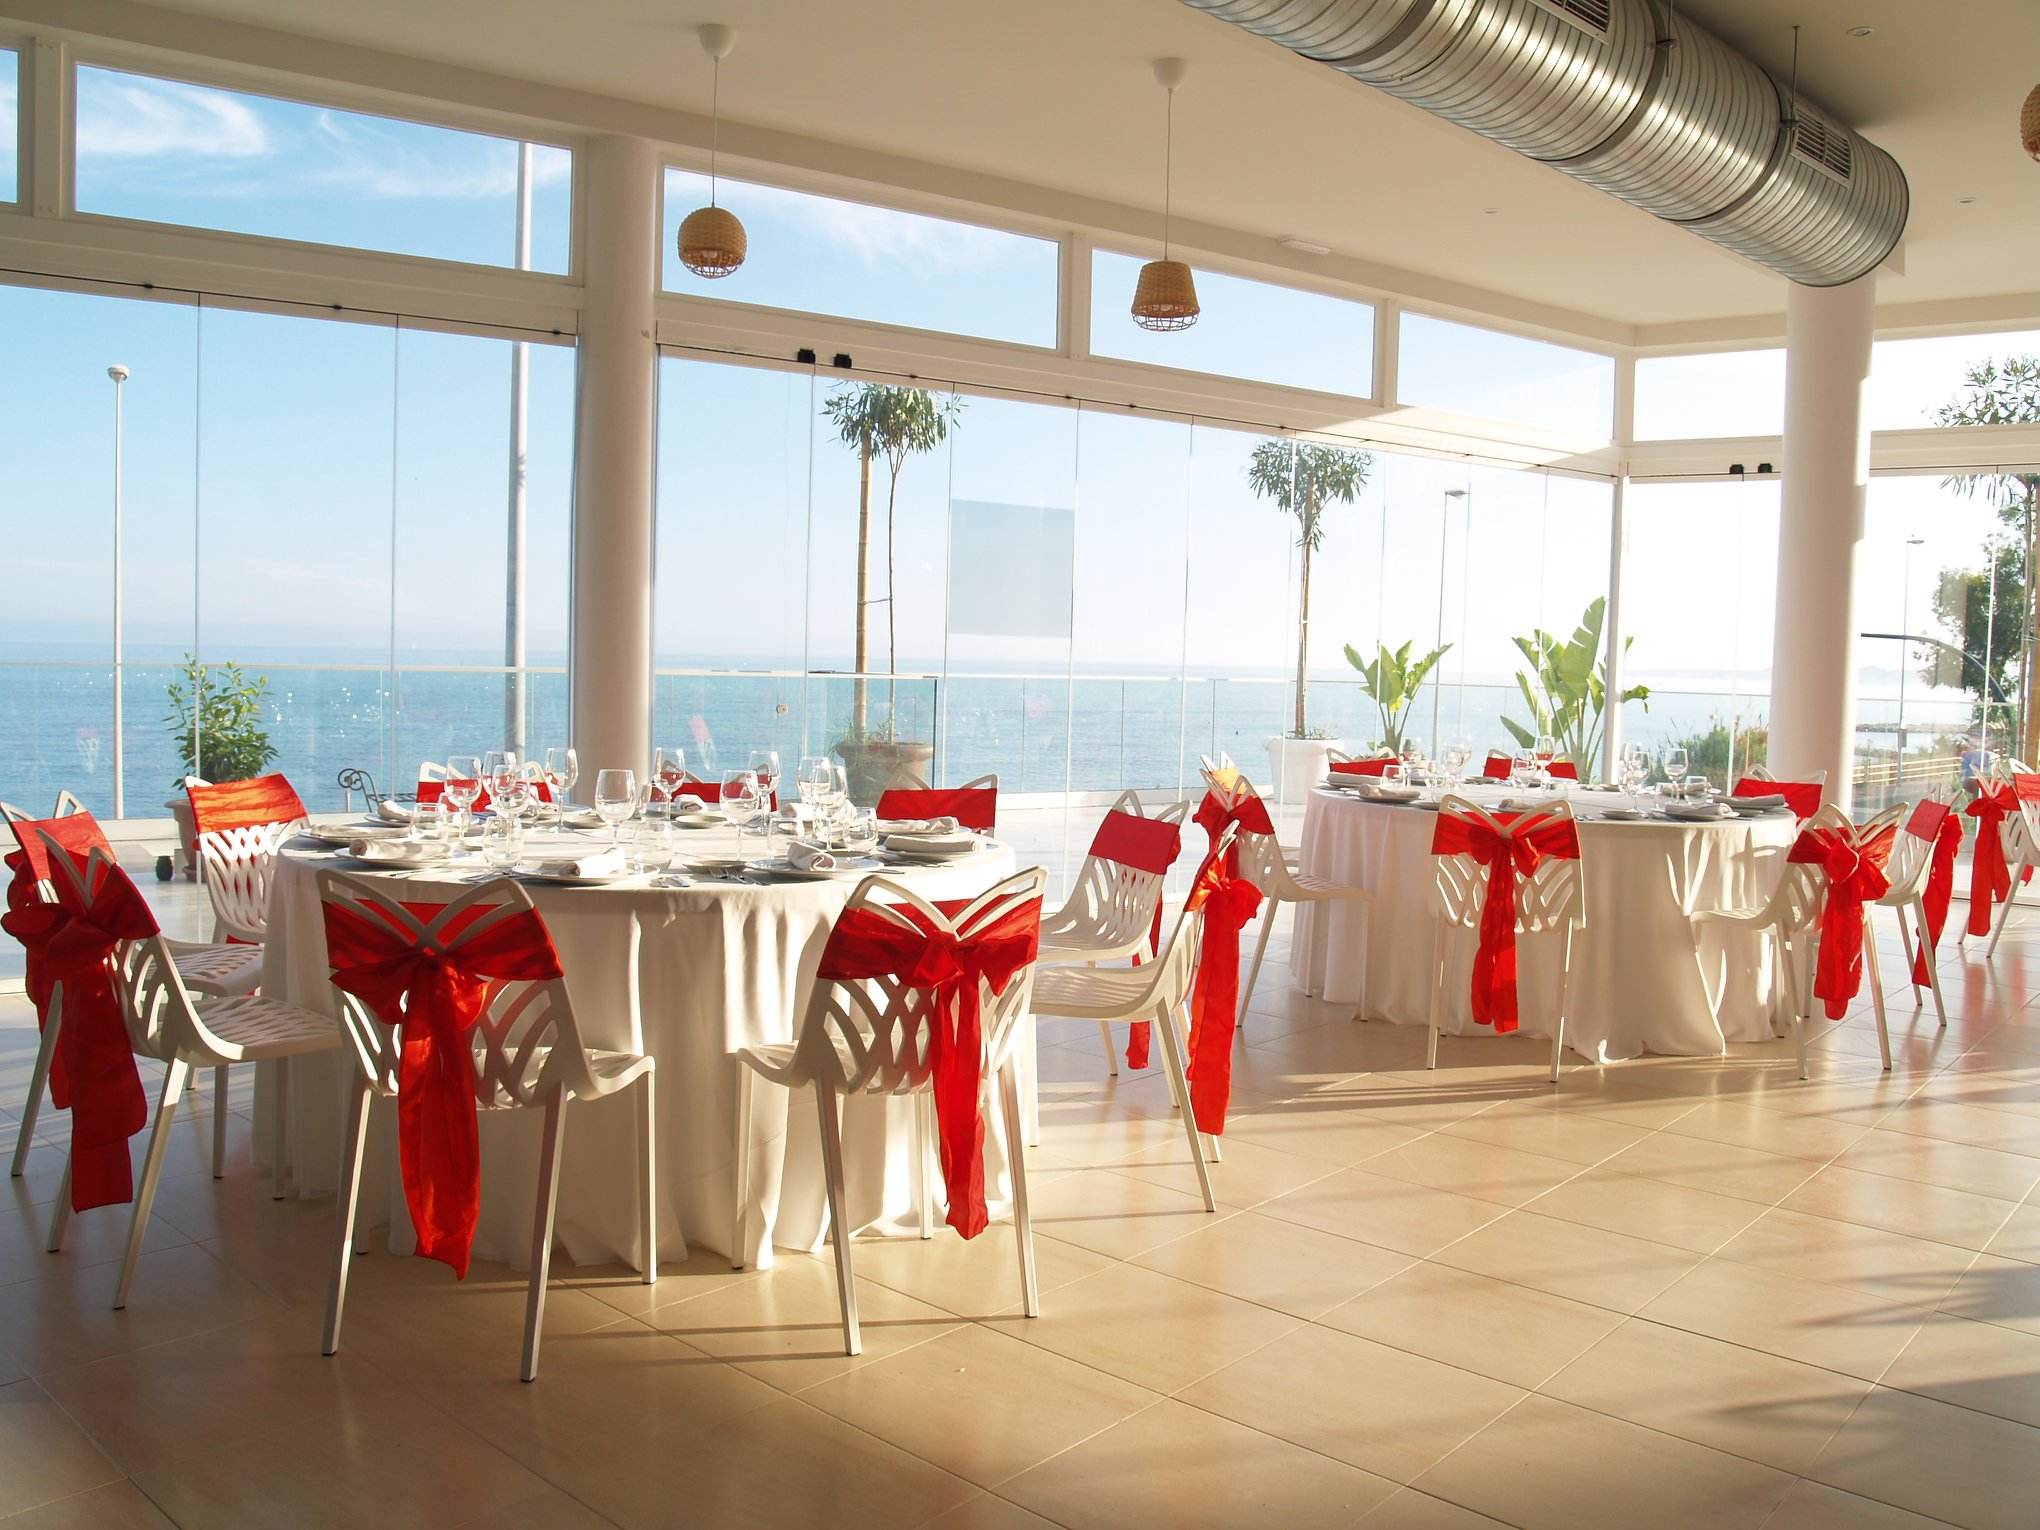 Wedding in Spain by the sea